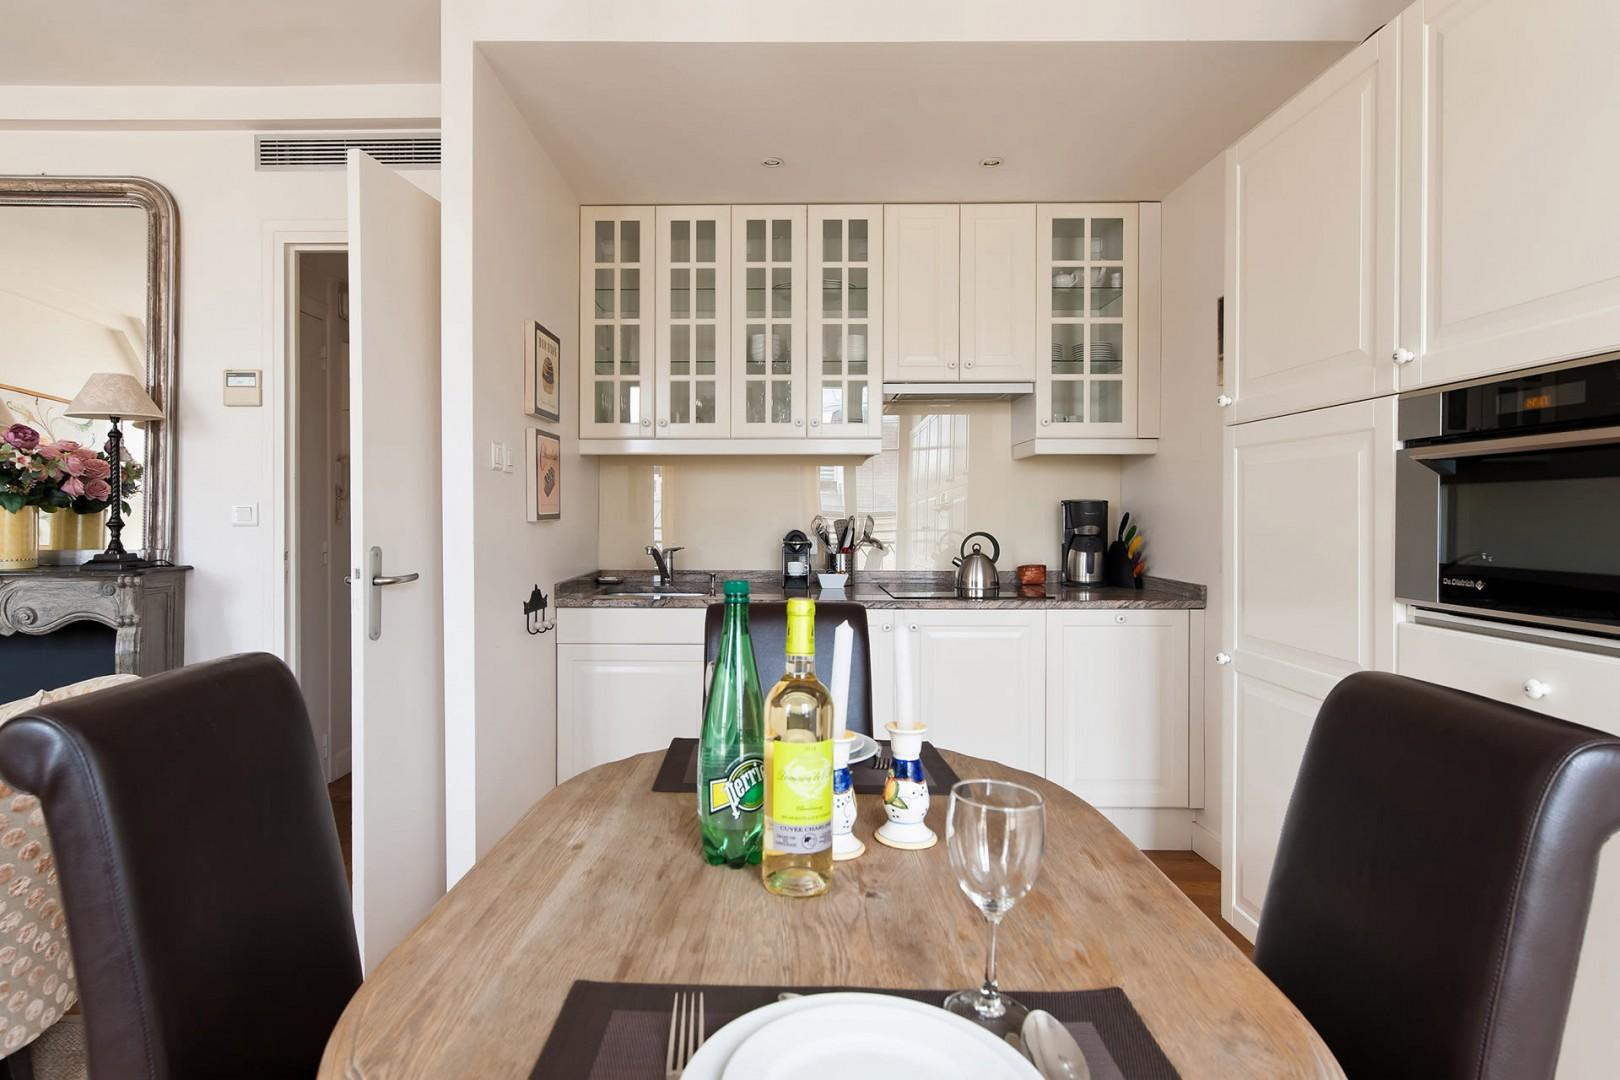 You'll love having your own kitchen and dining area!